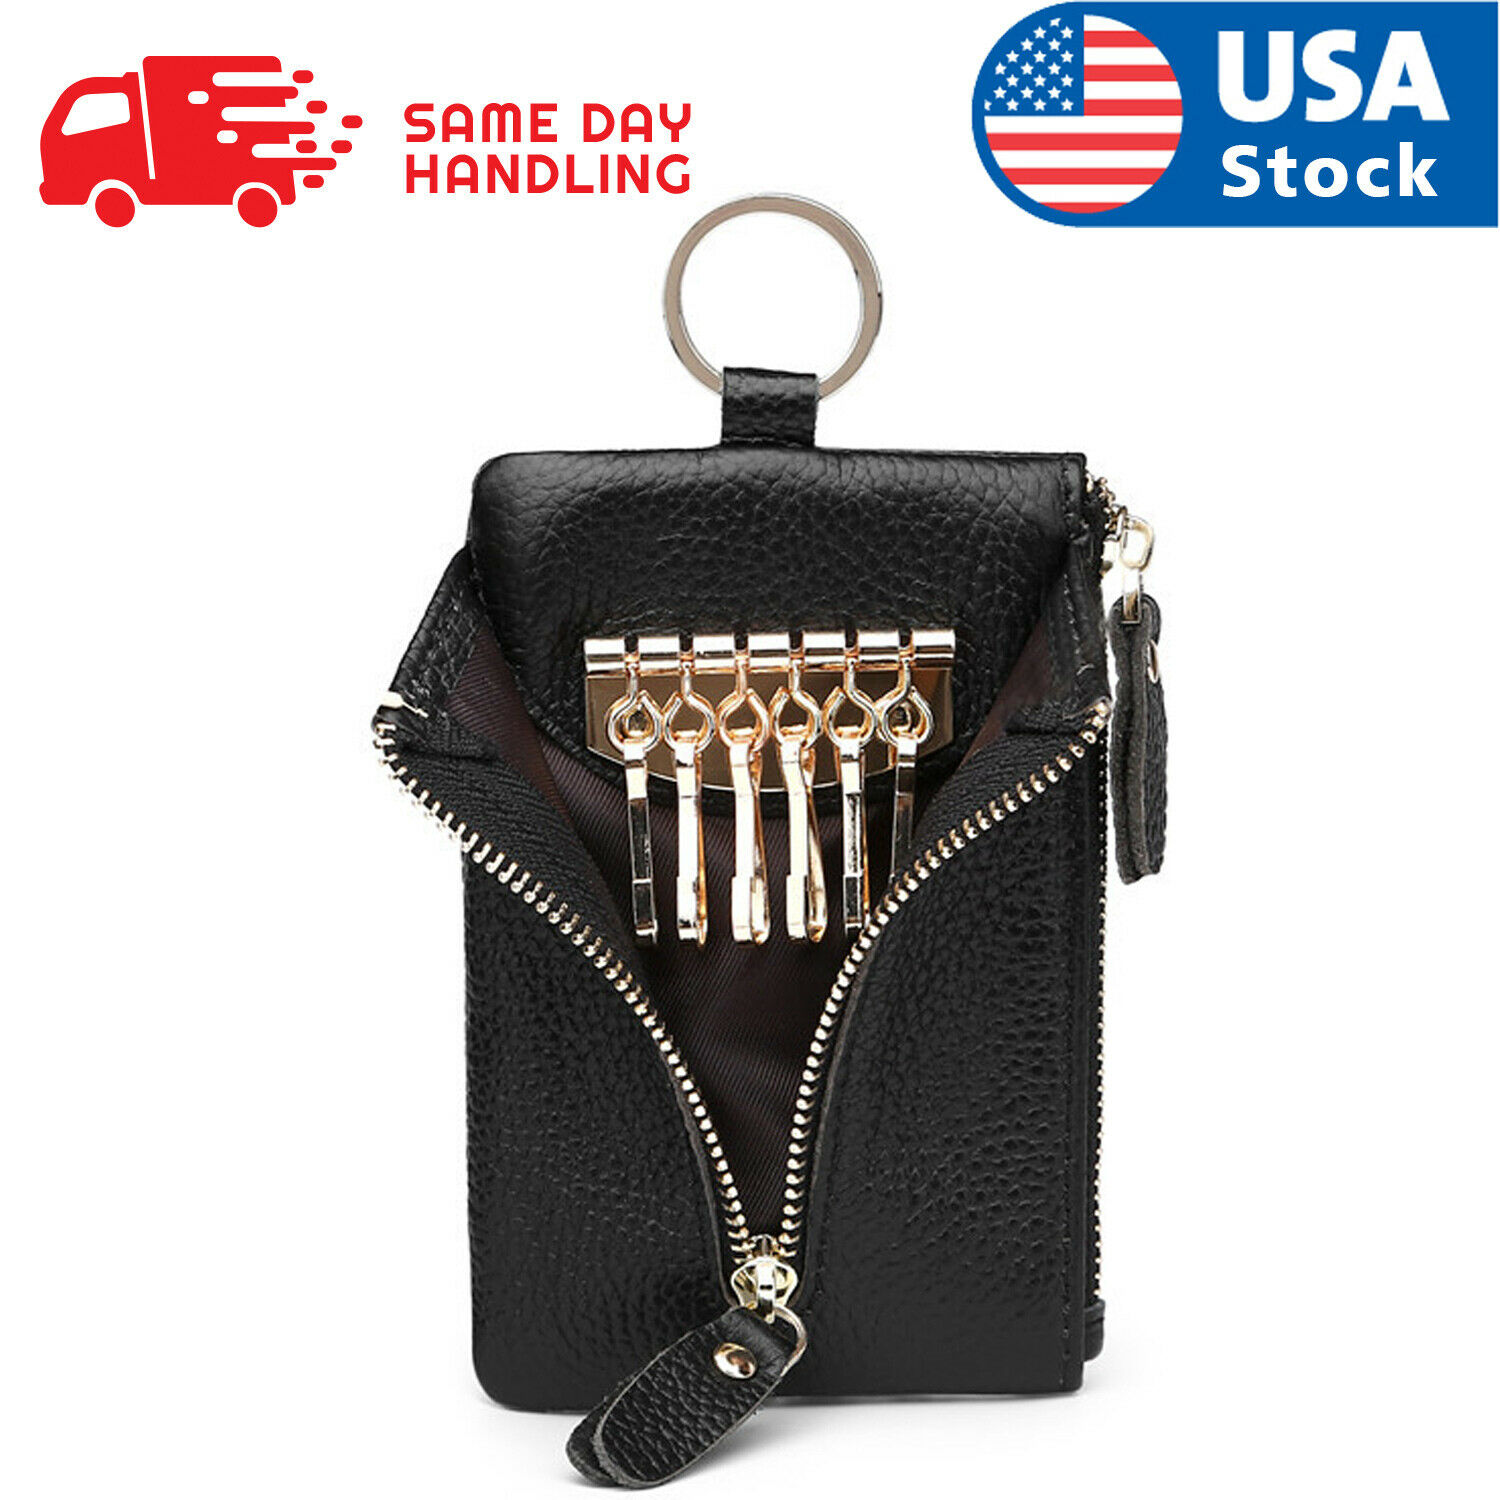 Genuine Leather Car Key Chain Ring Keys Holder Pouch Case Wallet Organizer Bag Clothing, Shoes & Accessories